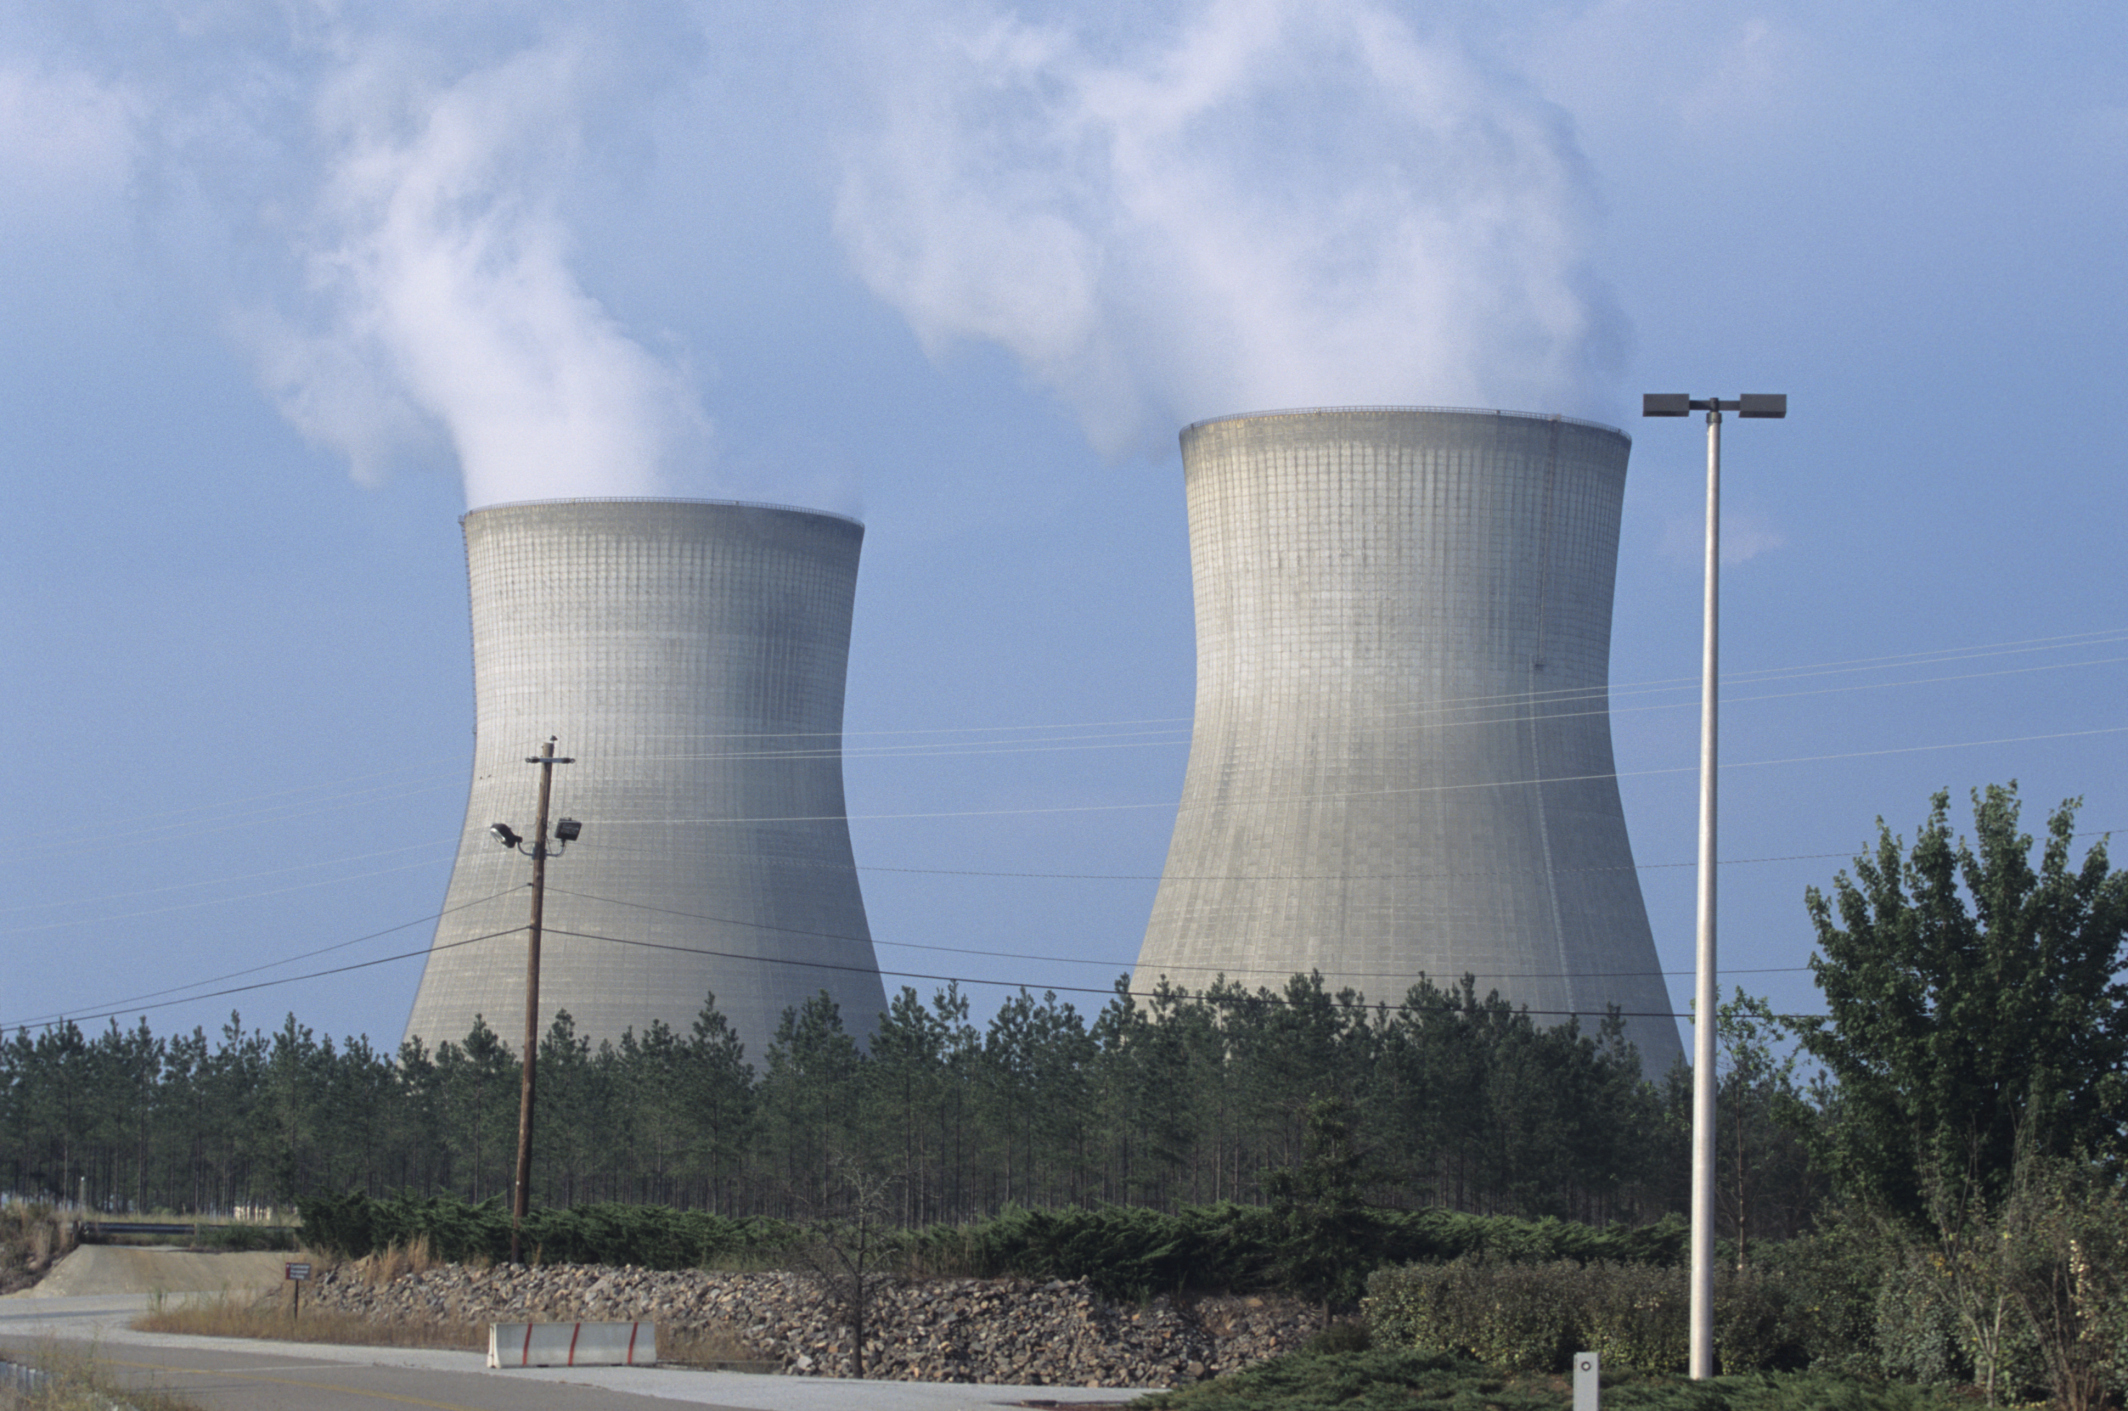 Types of Nuclear Power Plants